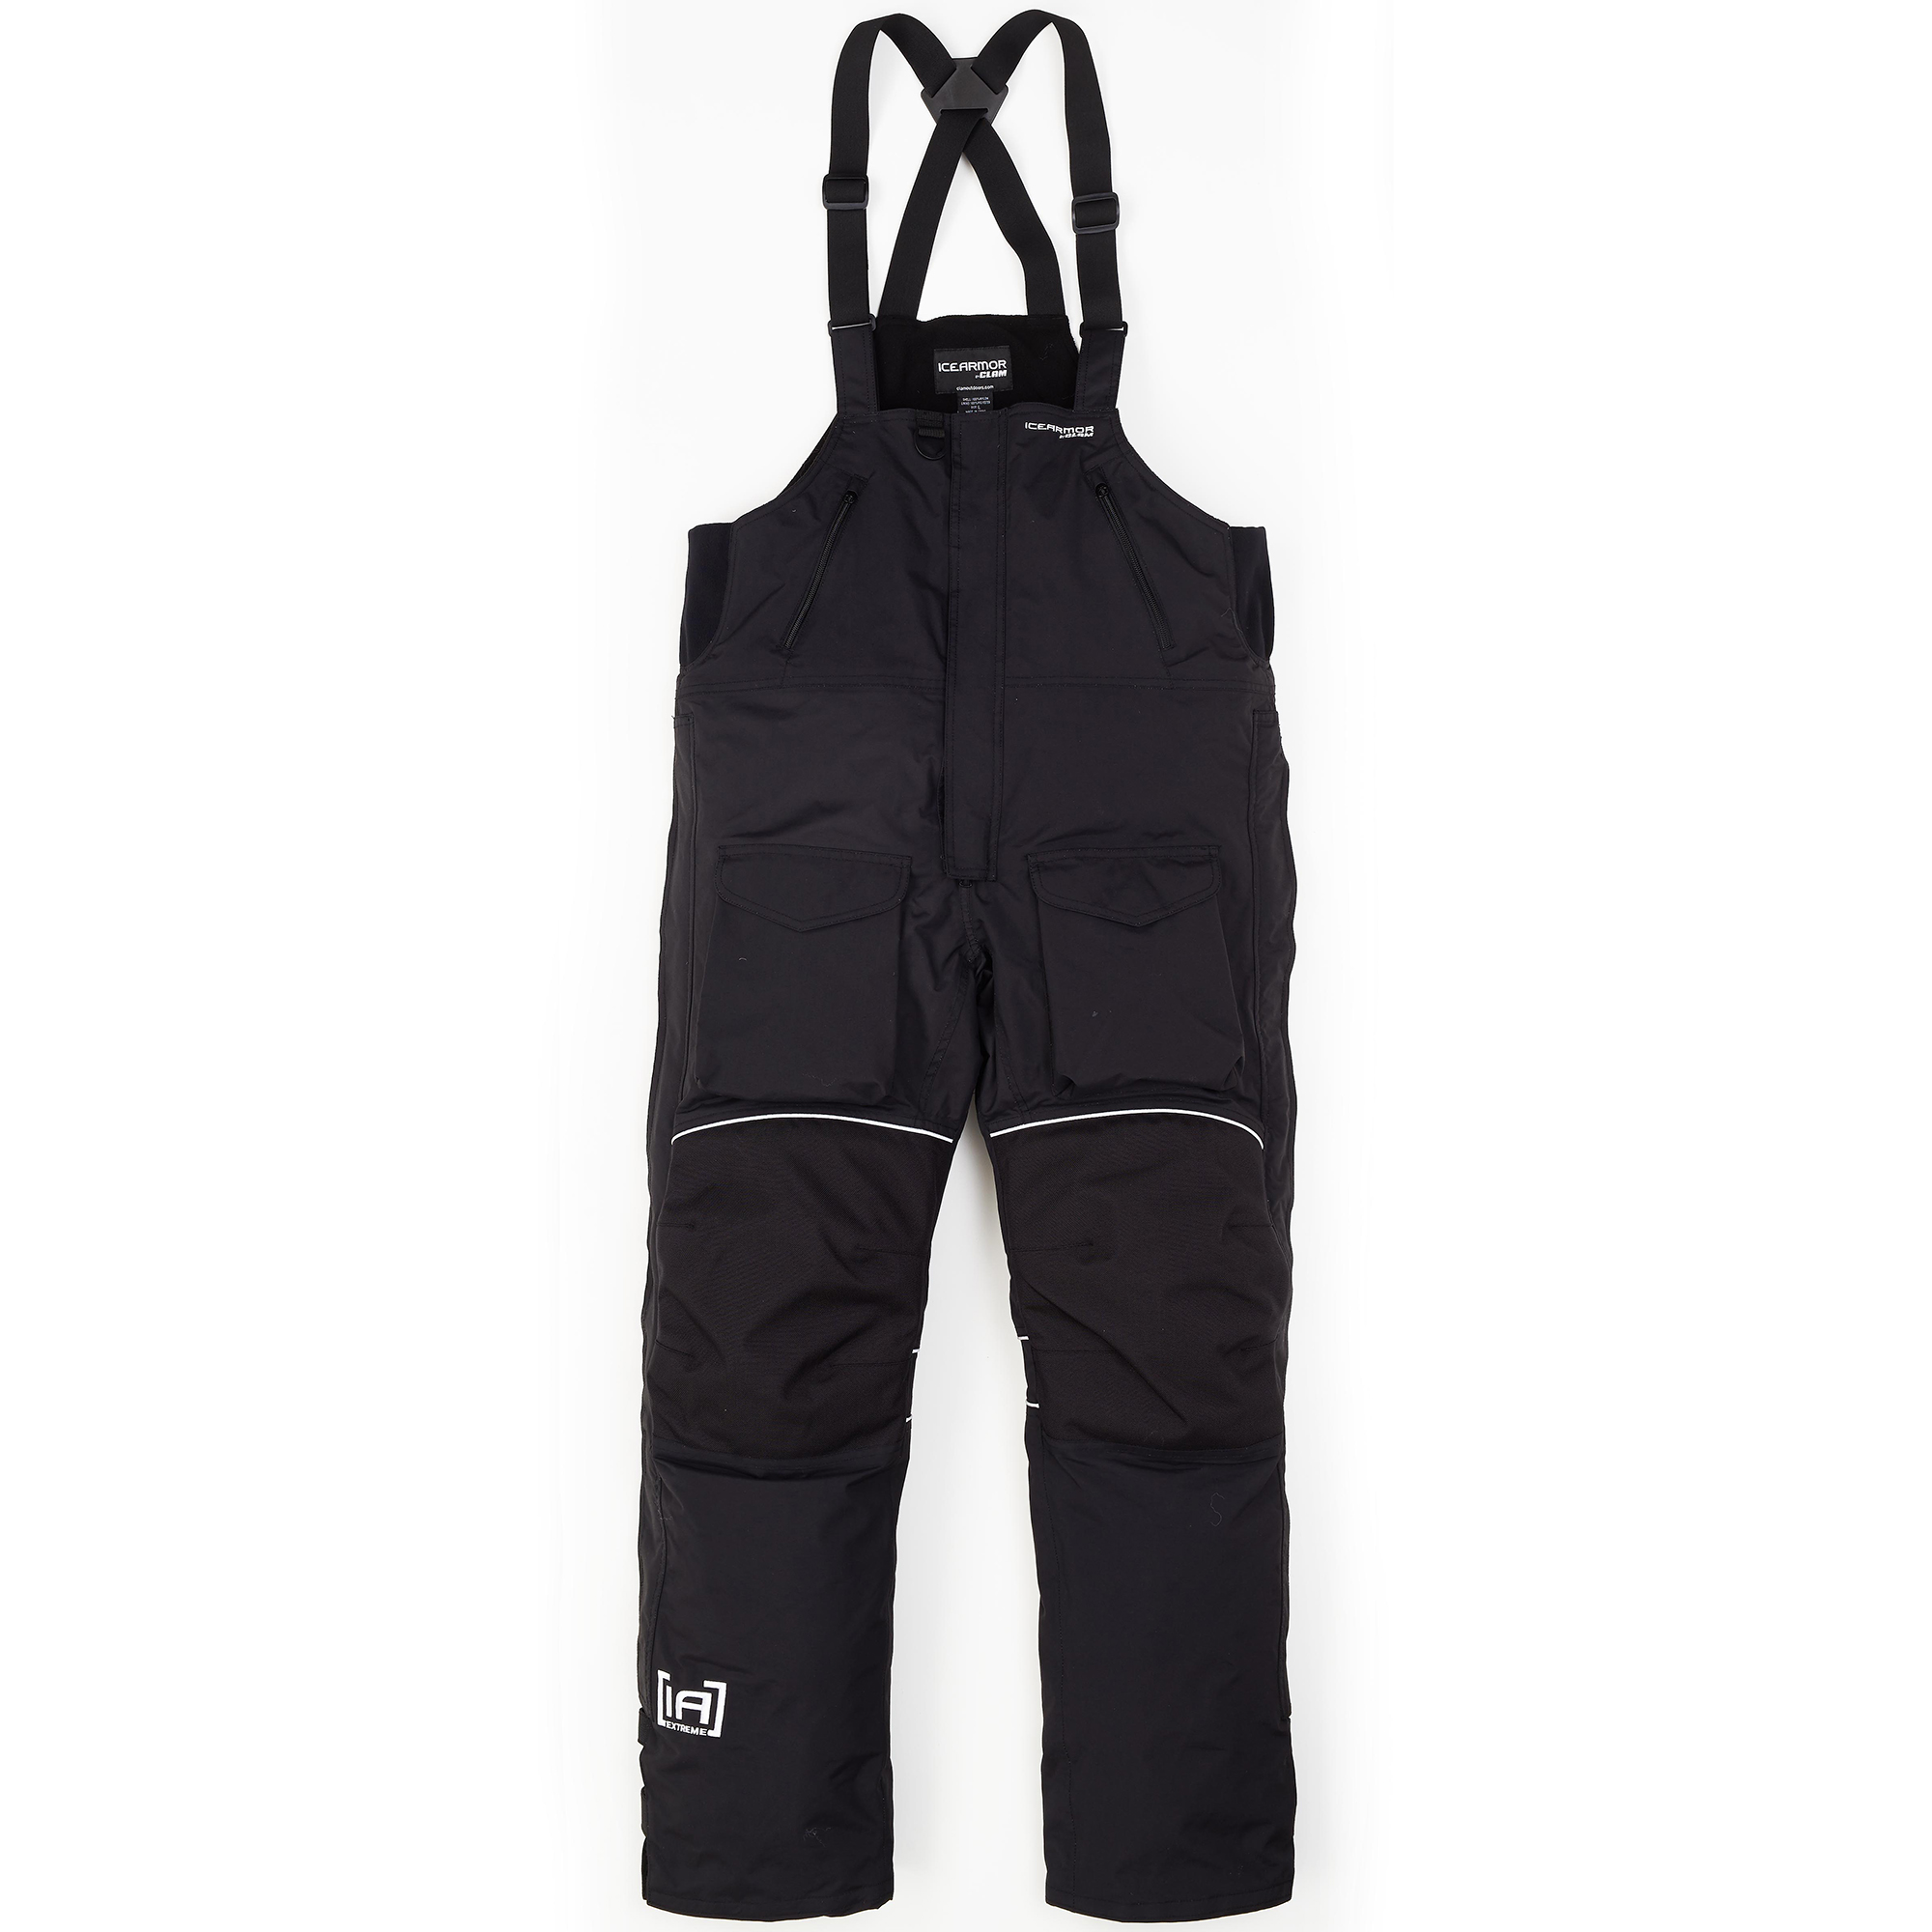 Clam Men's Ice Armor Extreme Bib